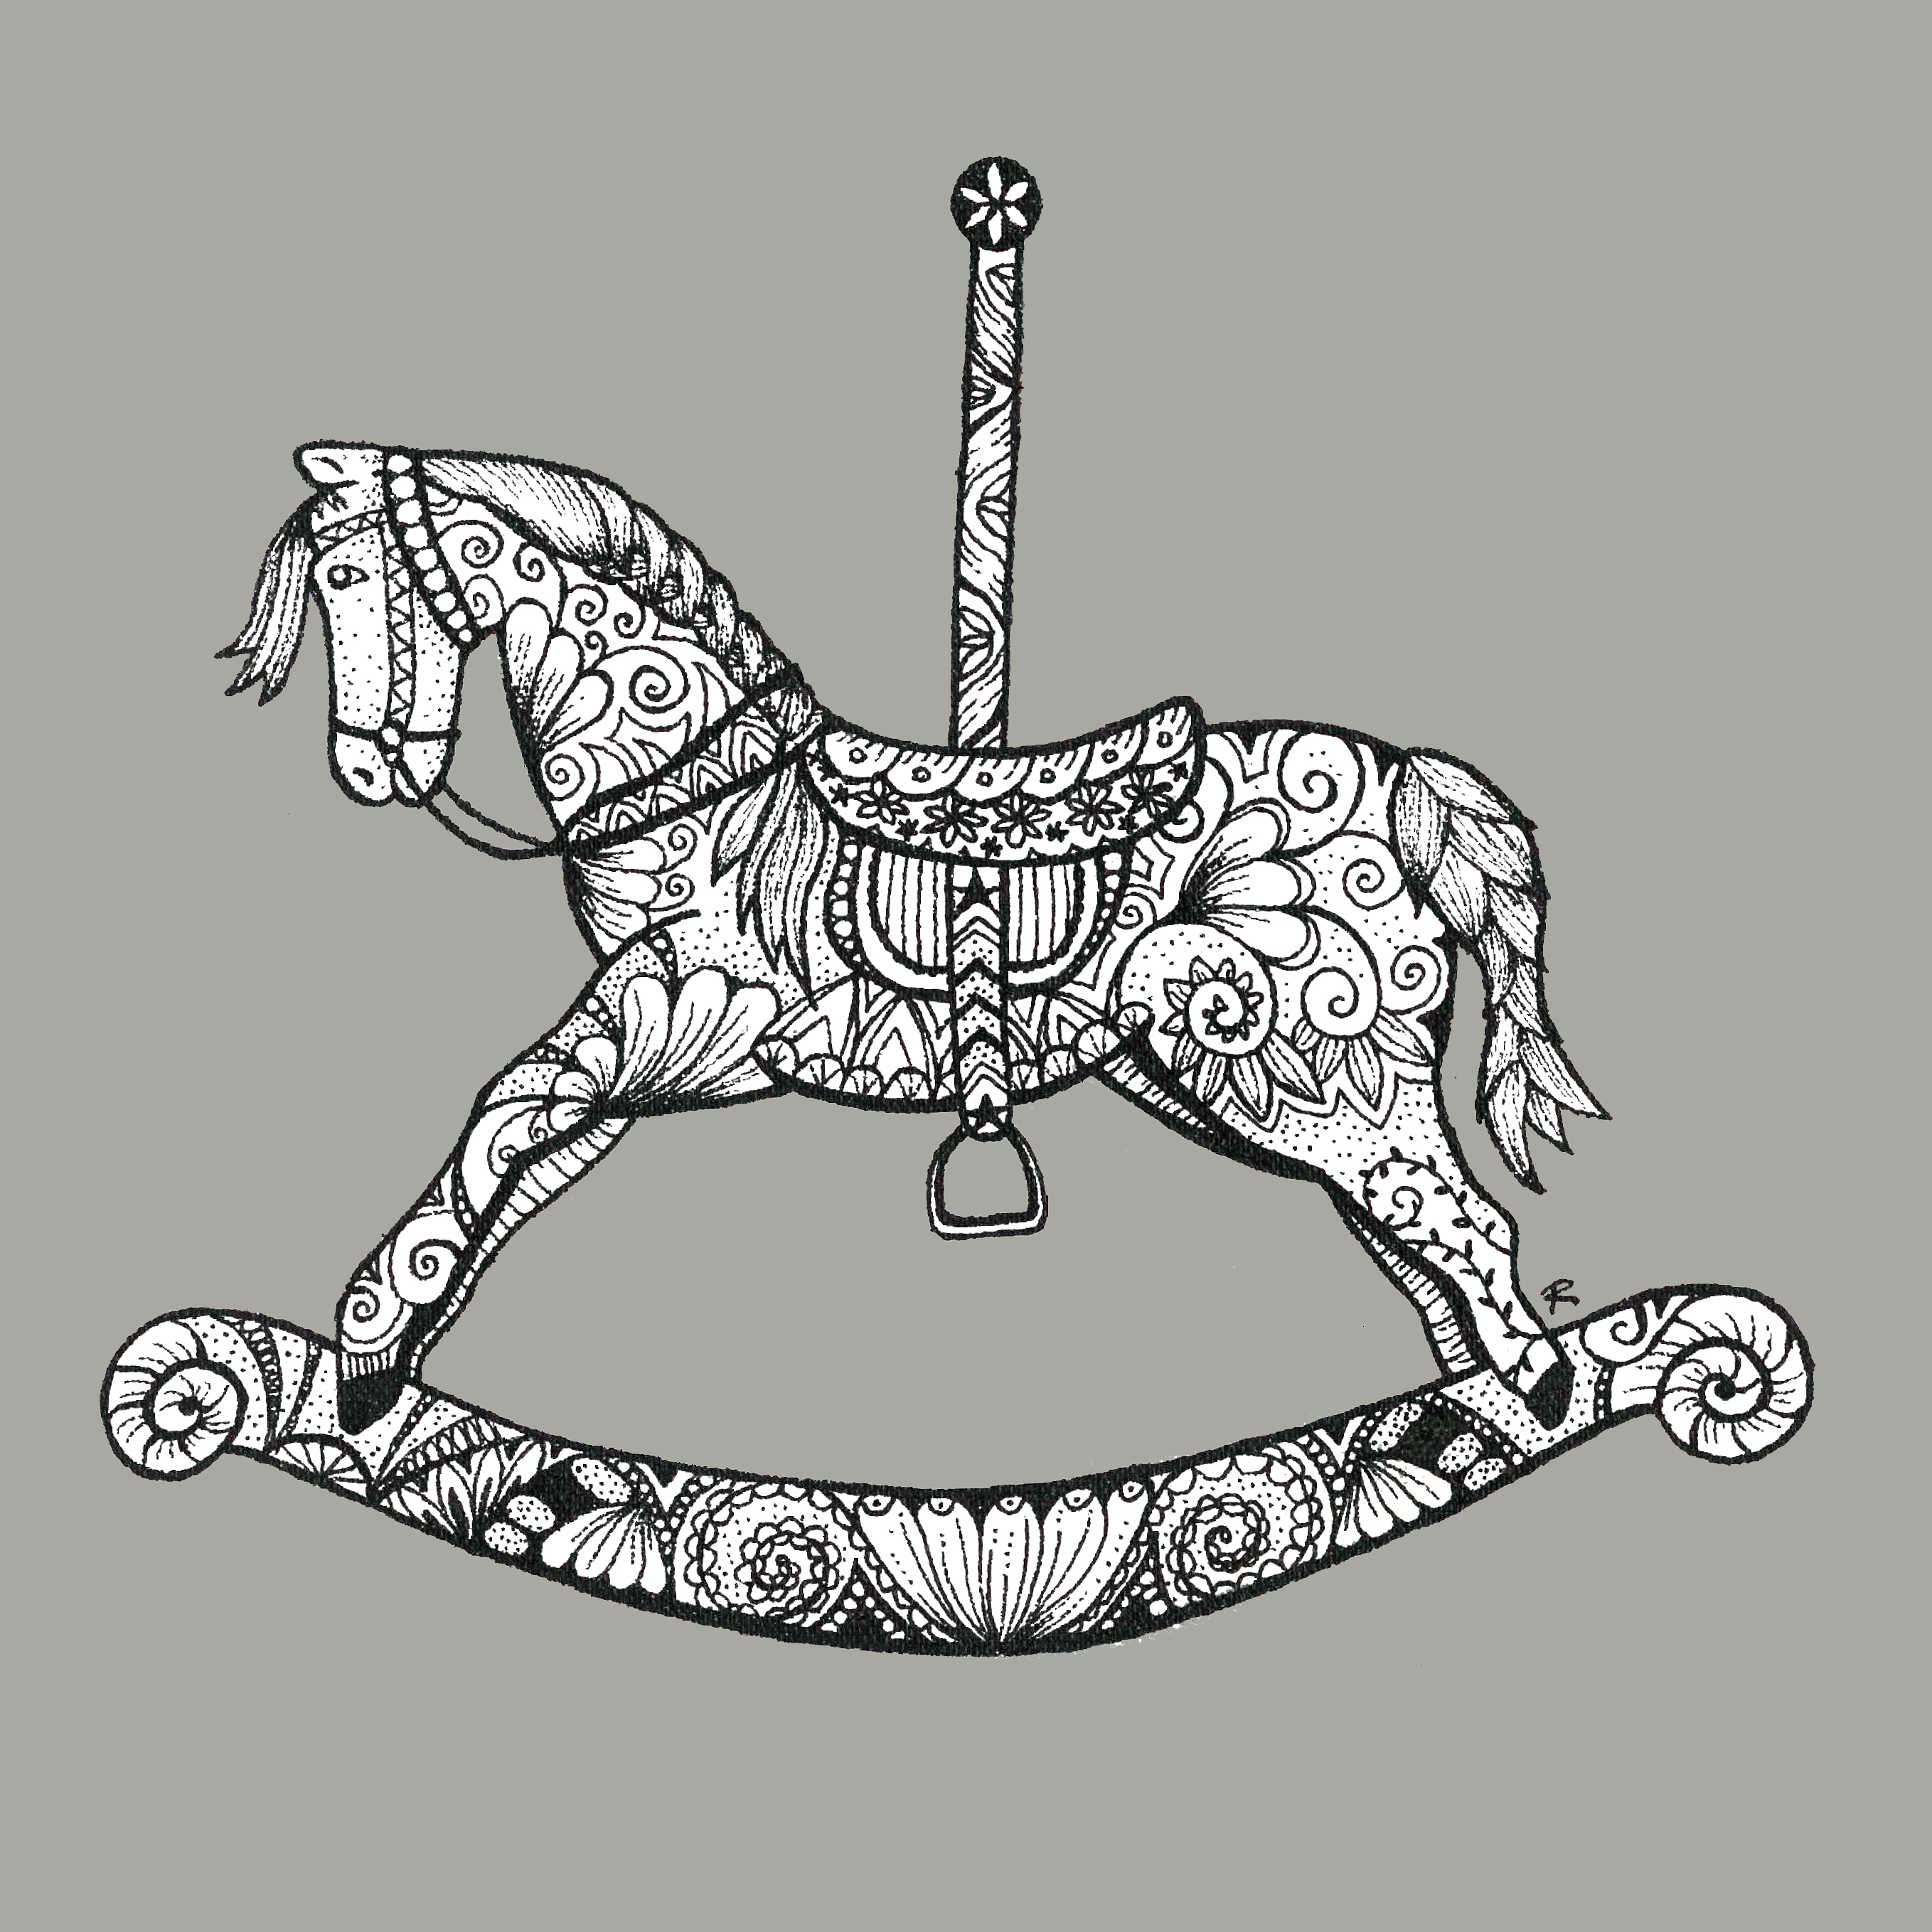 DIY How To Draw Rocking Horse Plans Free